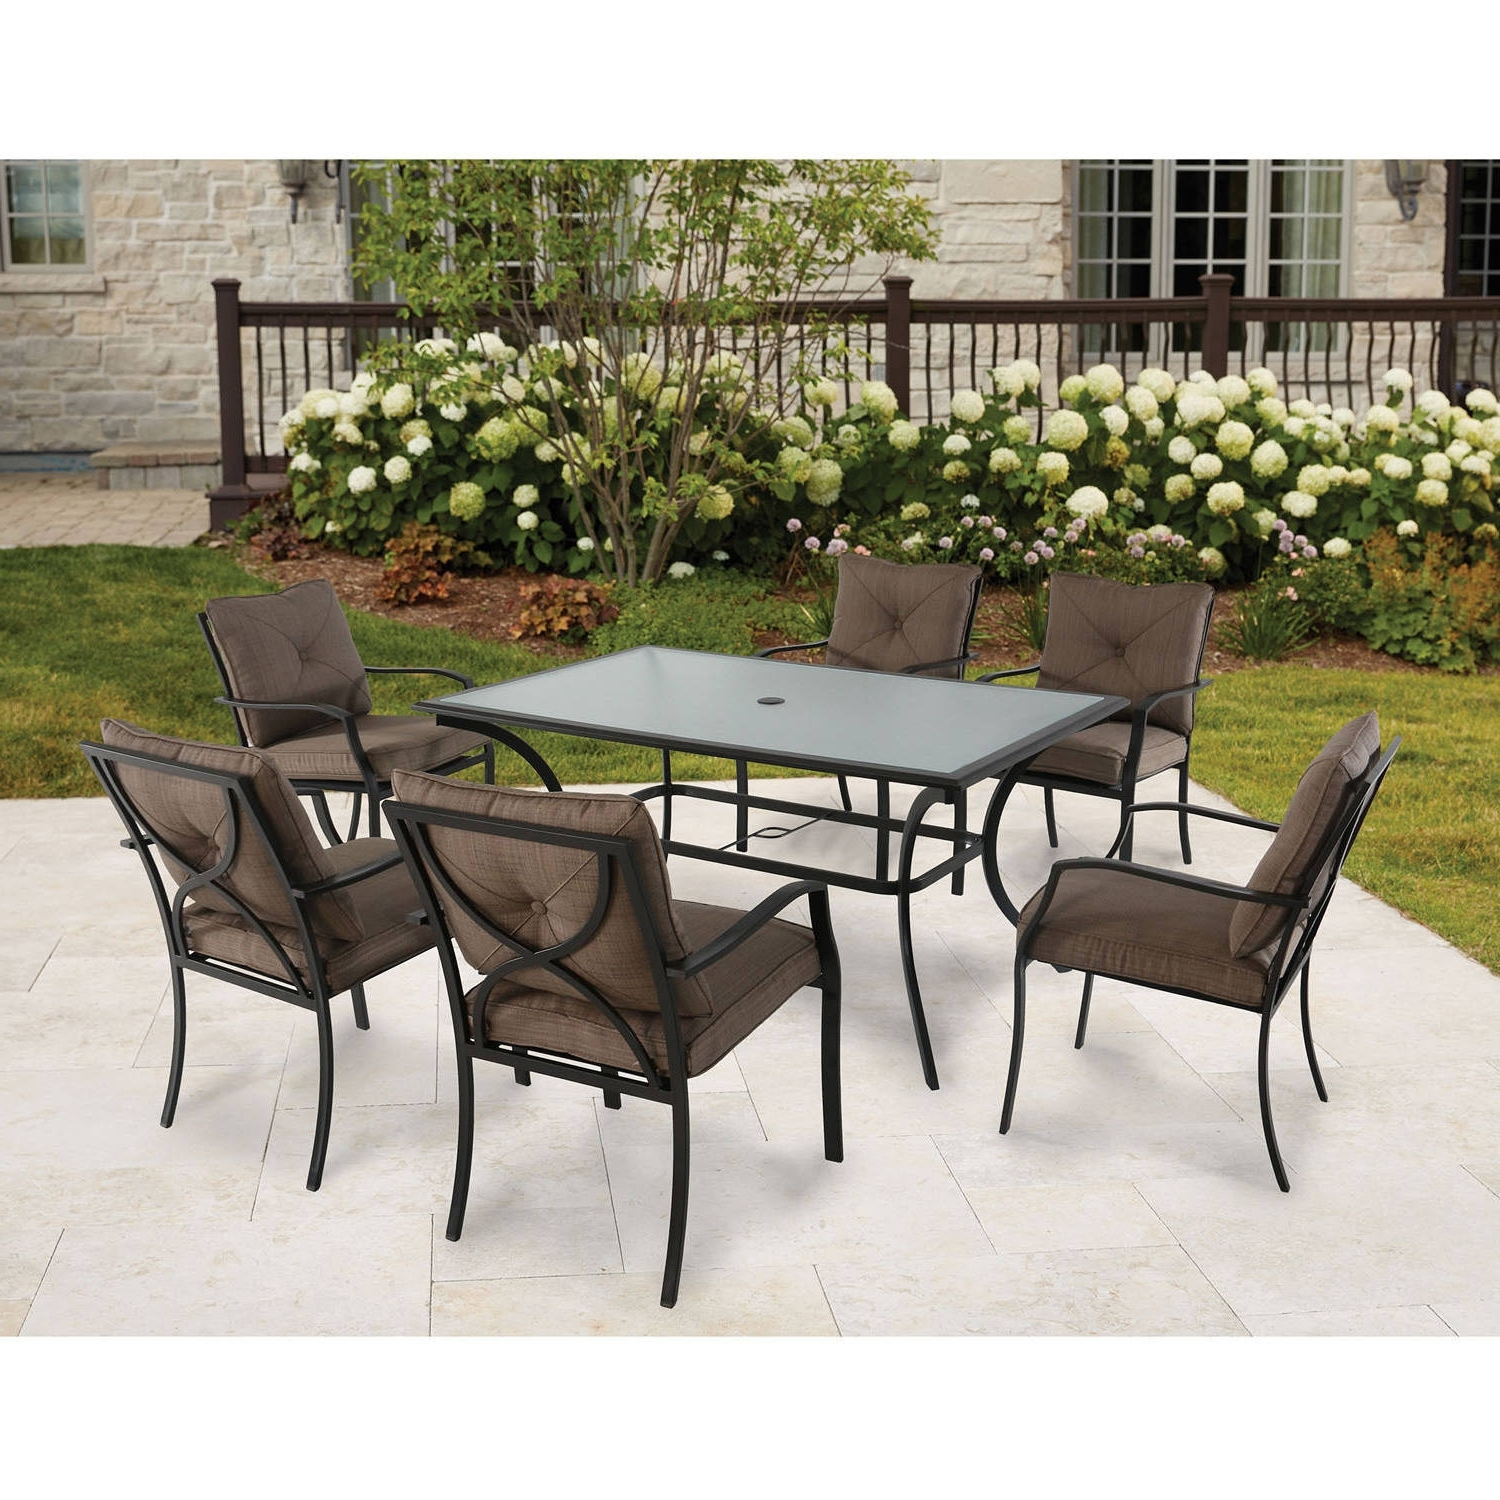 Cambridge Crawford 7 Piece Outdoor Dining Set – Walmart Throughout Most Recent Crawford 7 Piece Rectangle Dining Sets (View 3 of 25)